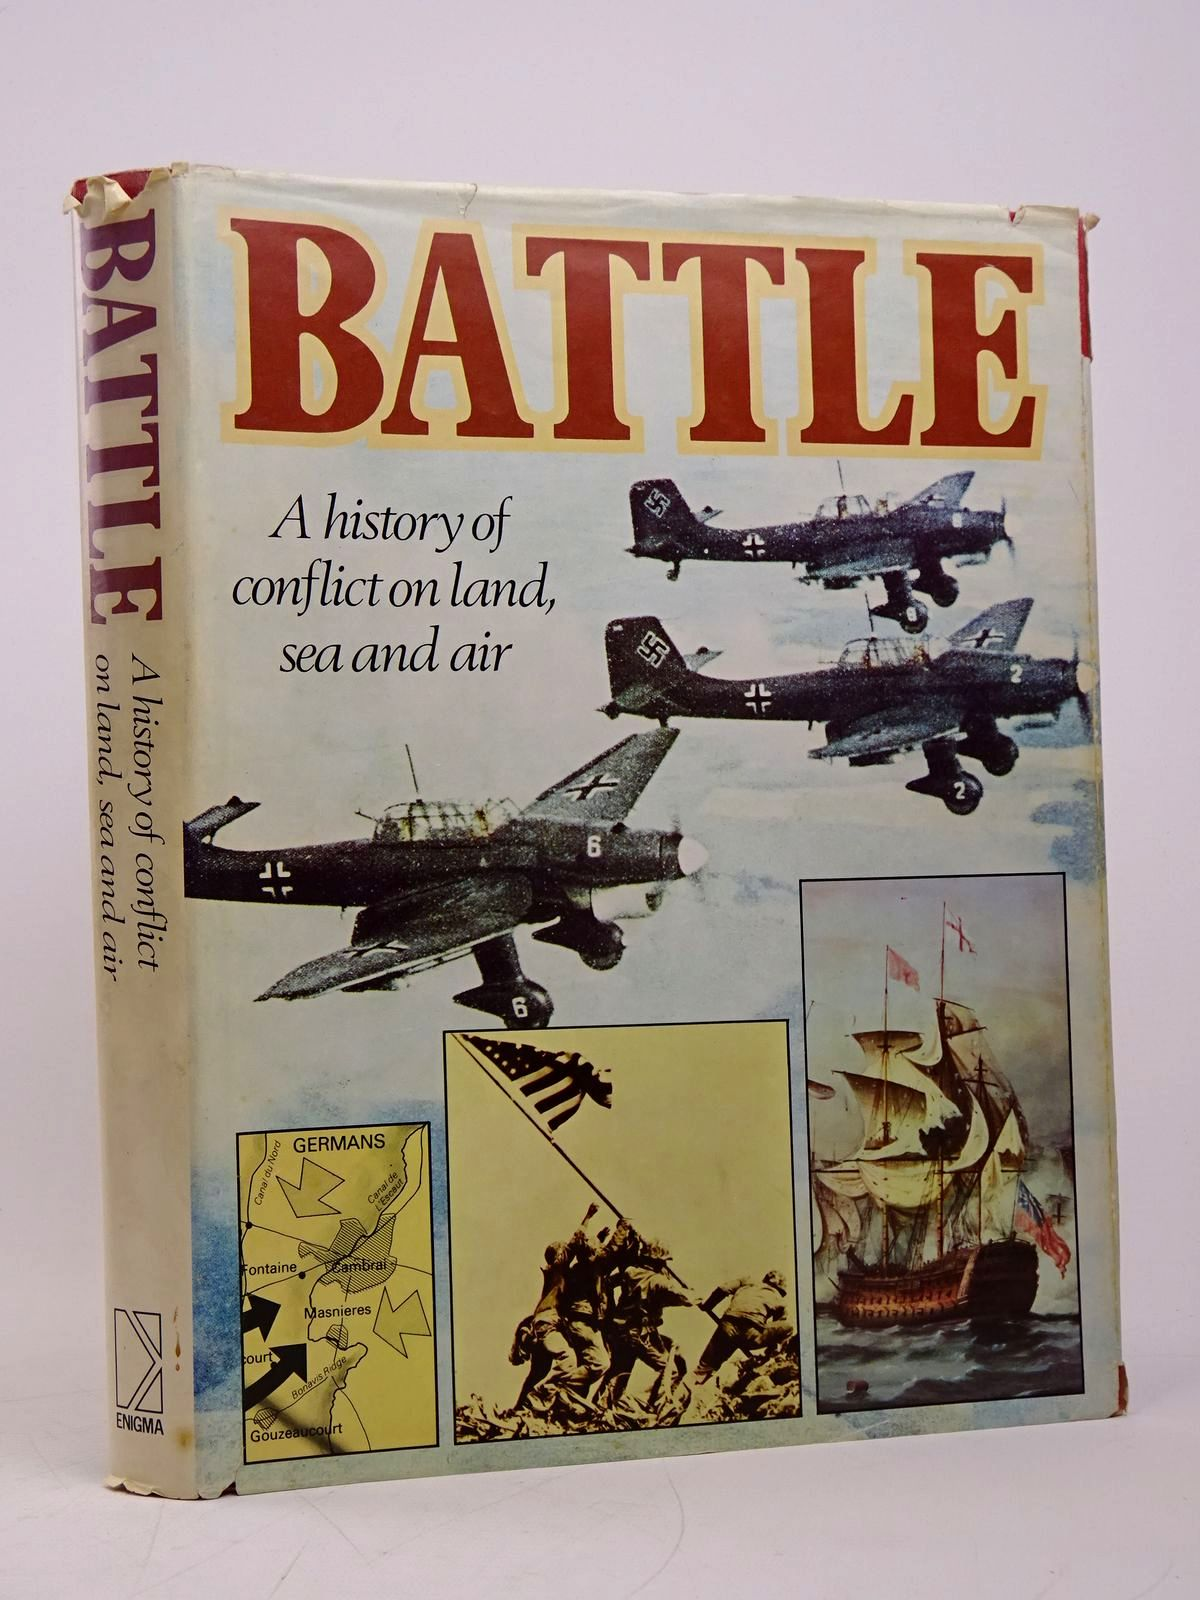 Photo of BATTLE: A HISTORY OF CONFLICT ON LAND, SEA AND AIR written by Revie, Alistair Foster, Thomas Graham, Burton published by Enigma Books (STOCK CODE: 1817857)  for sale by Stella & Rose's Books